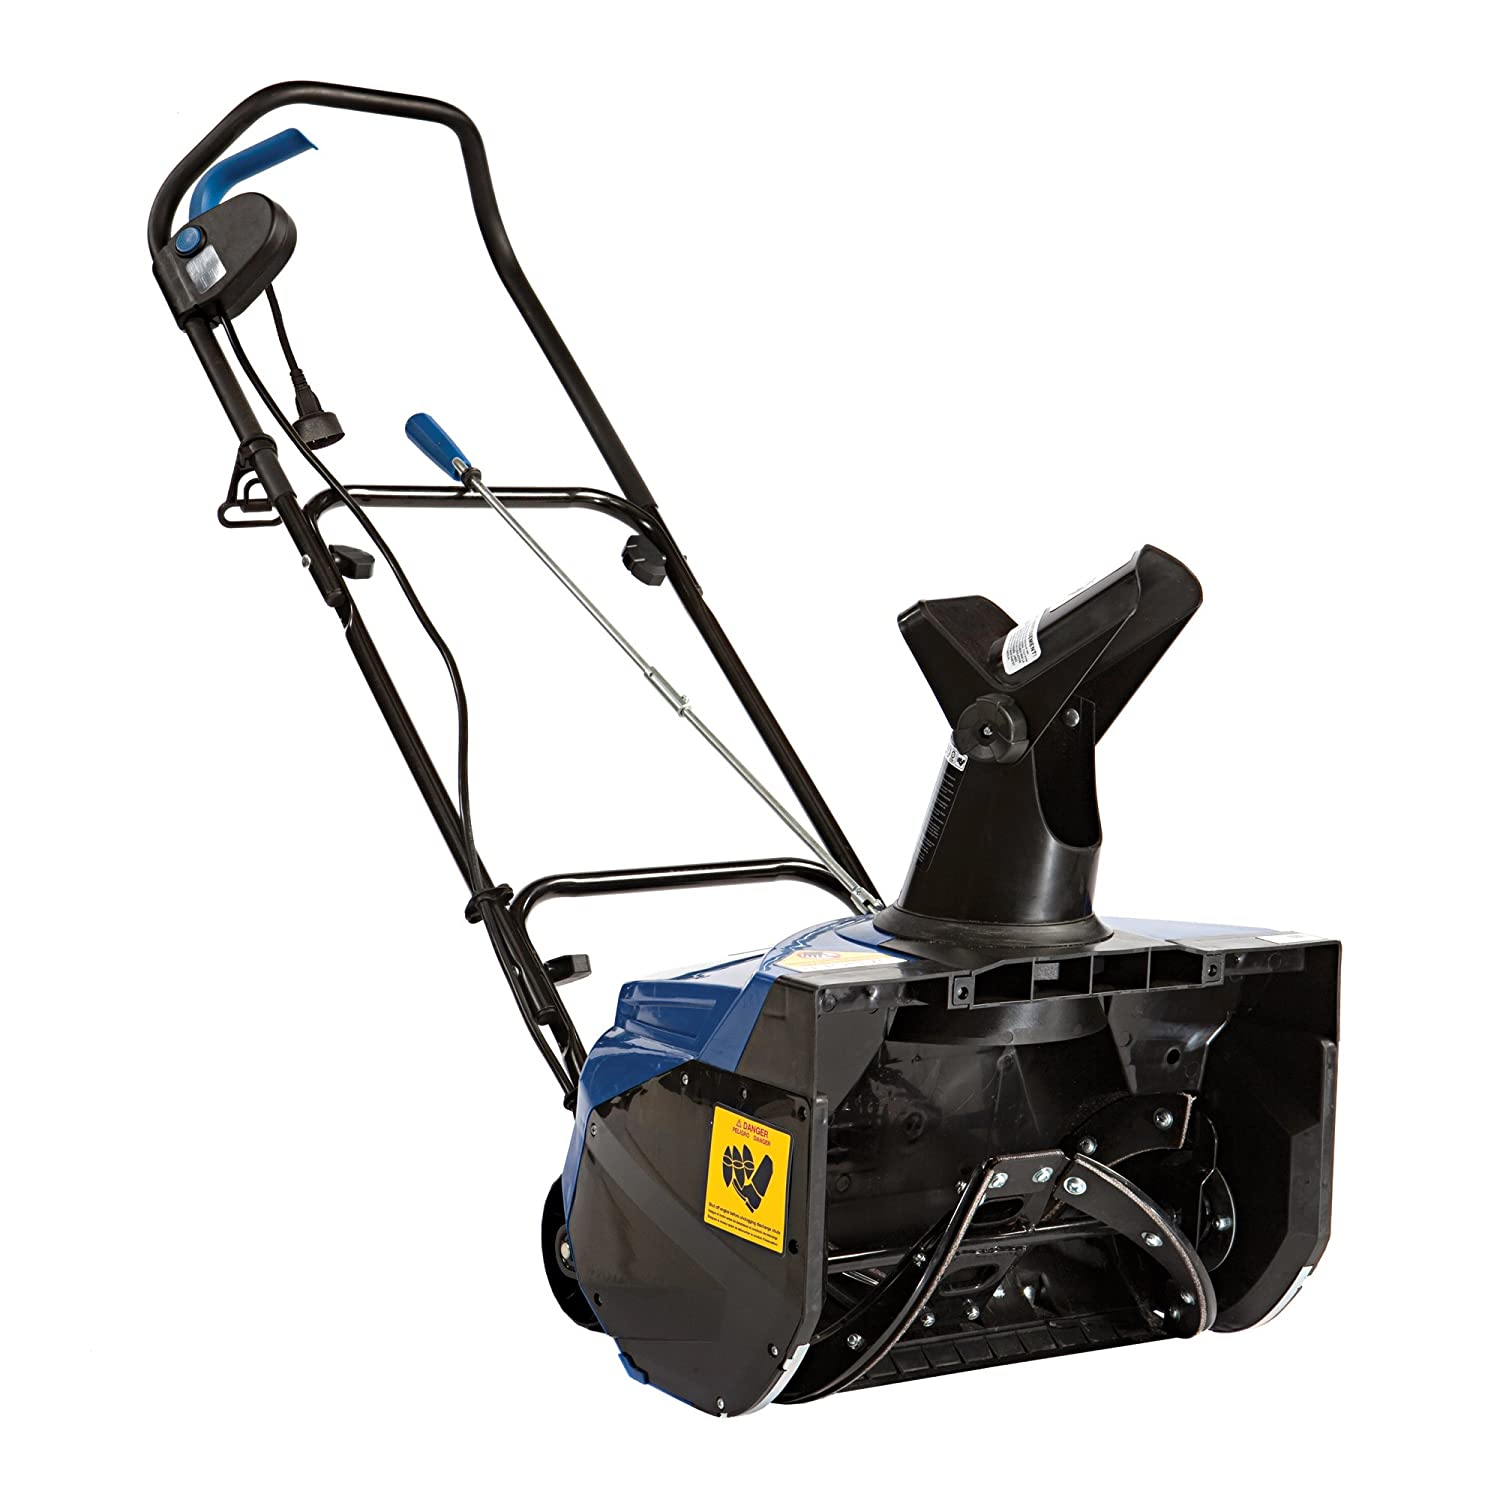 Best Electric Start Snow Blower : Snow throwers toro buy the best for